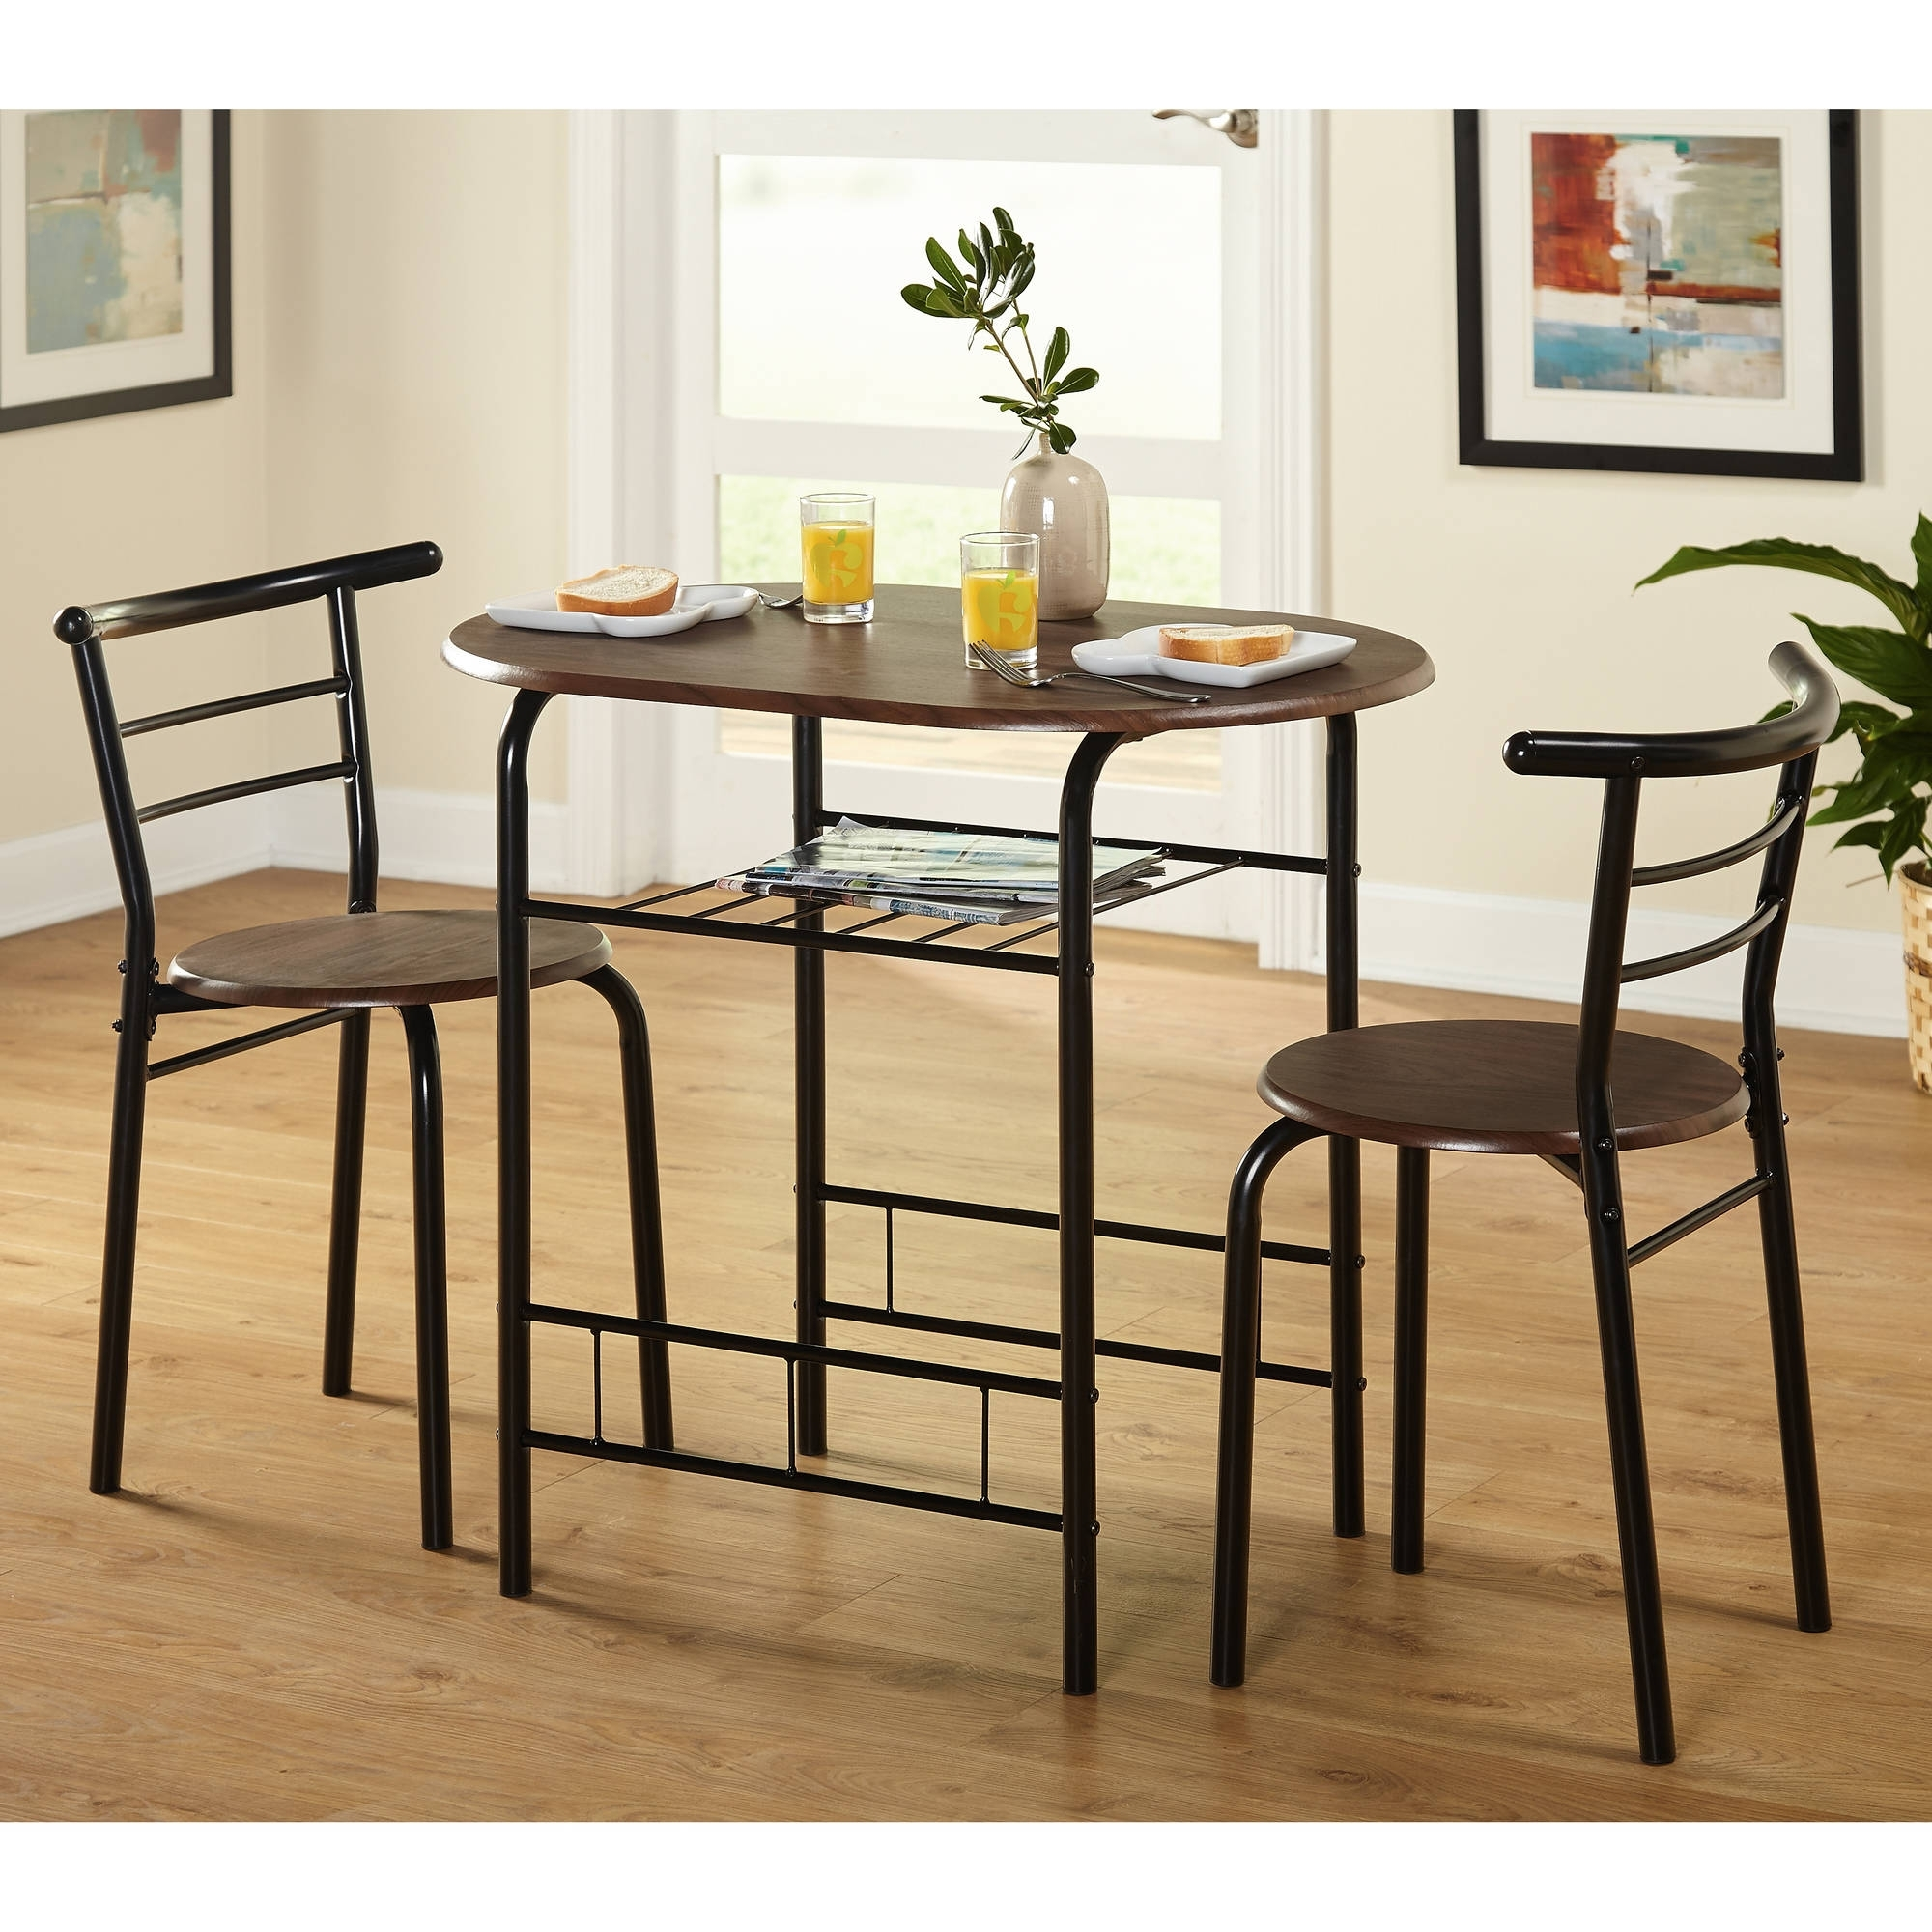 Fashionable Compact Dining Room Sets Throughout Tms 3 Piece Bistro Dining Set – Walmart (View 11 of 25)